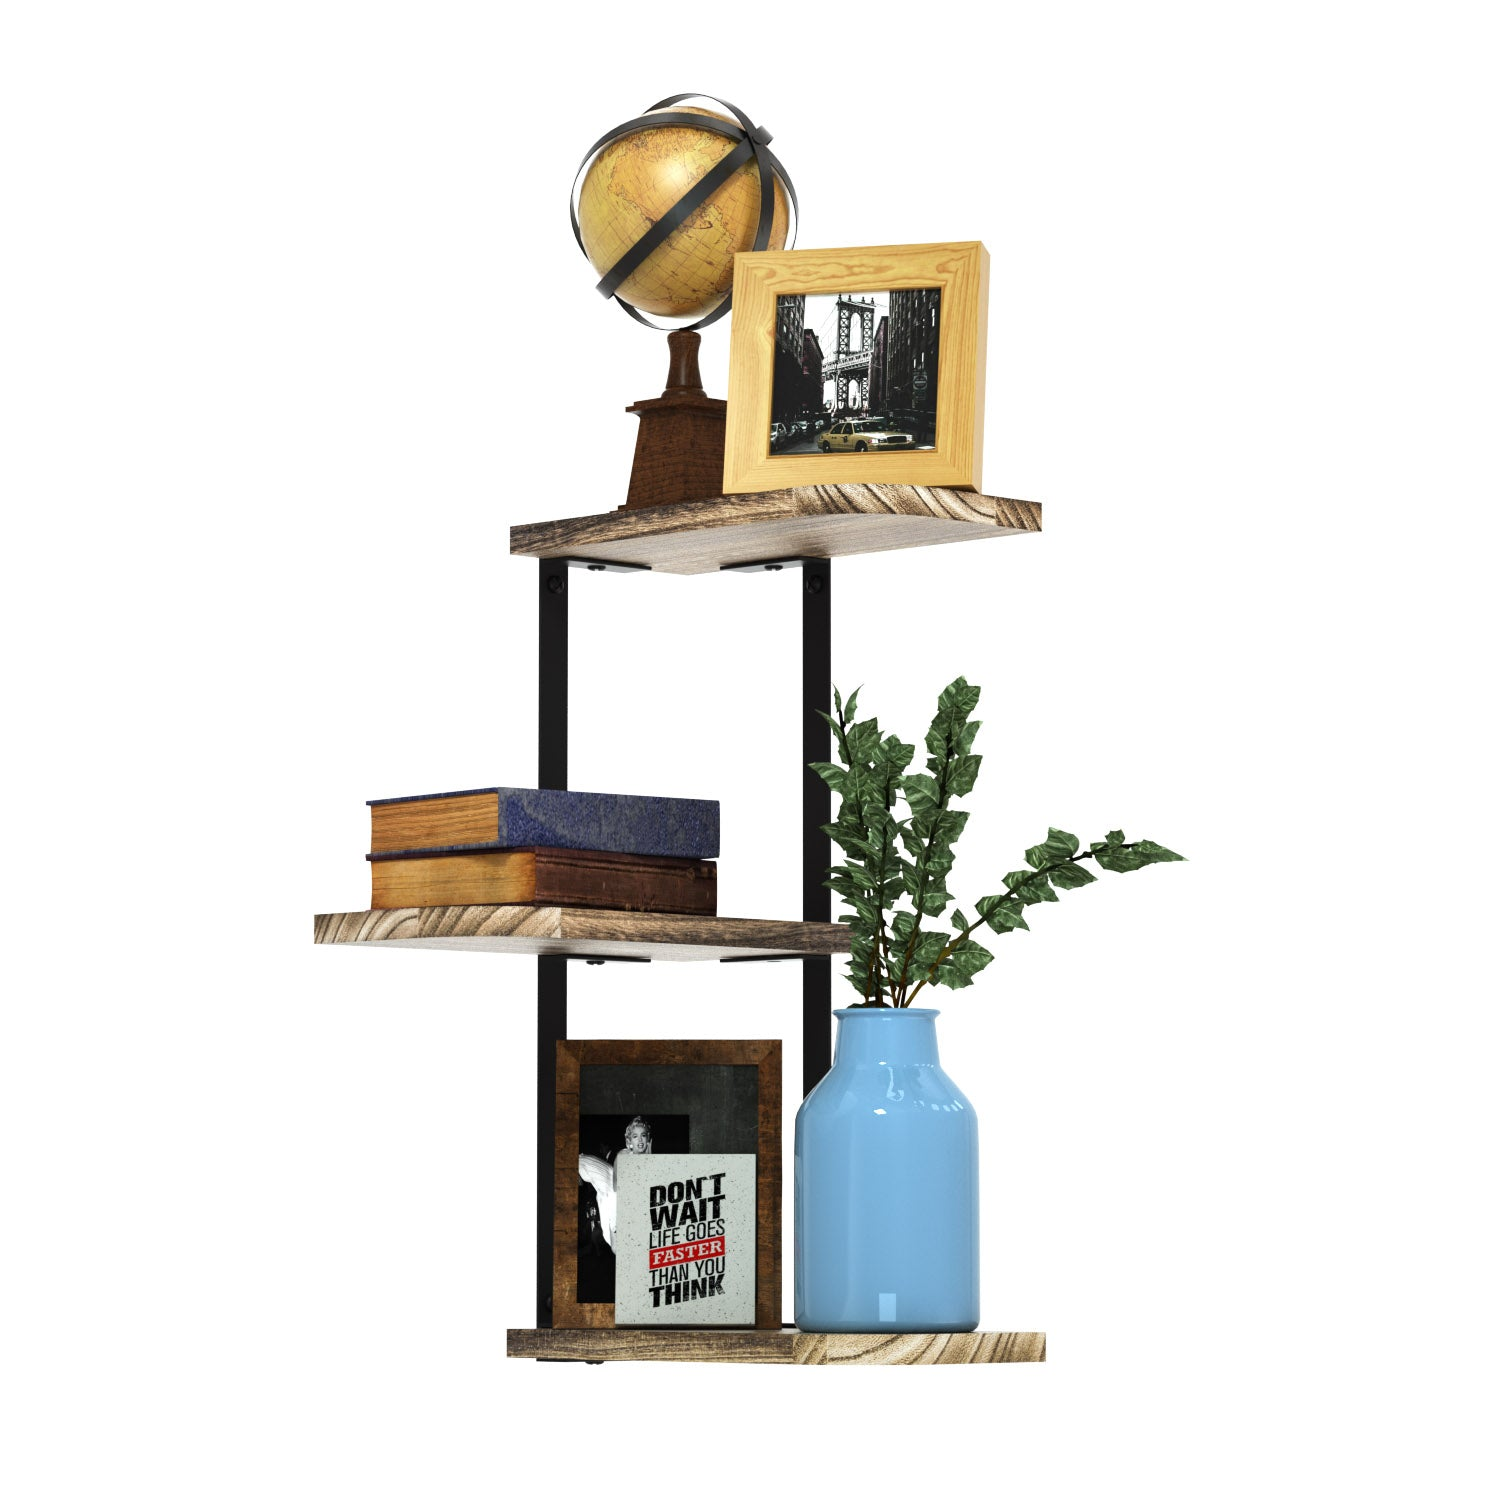 Love-KANKEI Corner Shelf Wall Mount of 5 Tier Rustic Wood Floating Shelves Wall Shelves for Bedroom Living Room Bathroom Kitchen Office and More Weathered Black